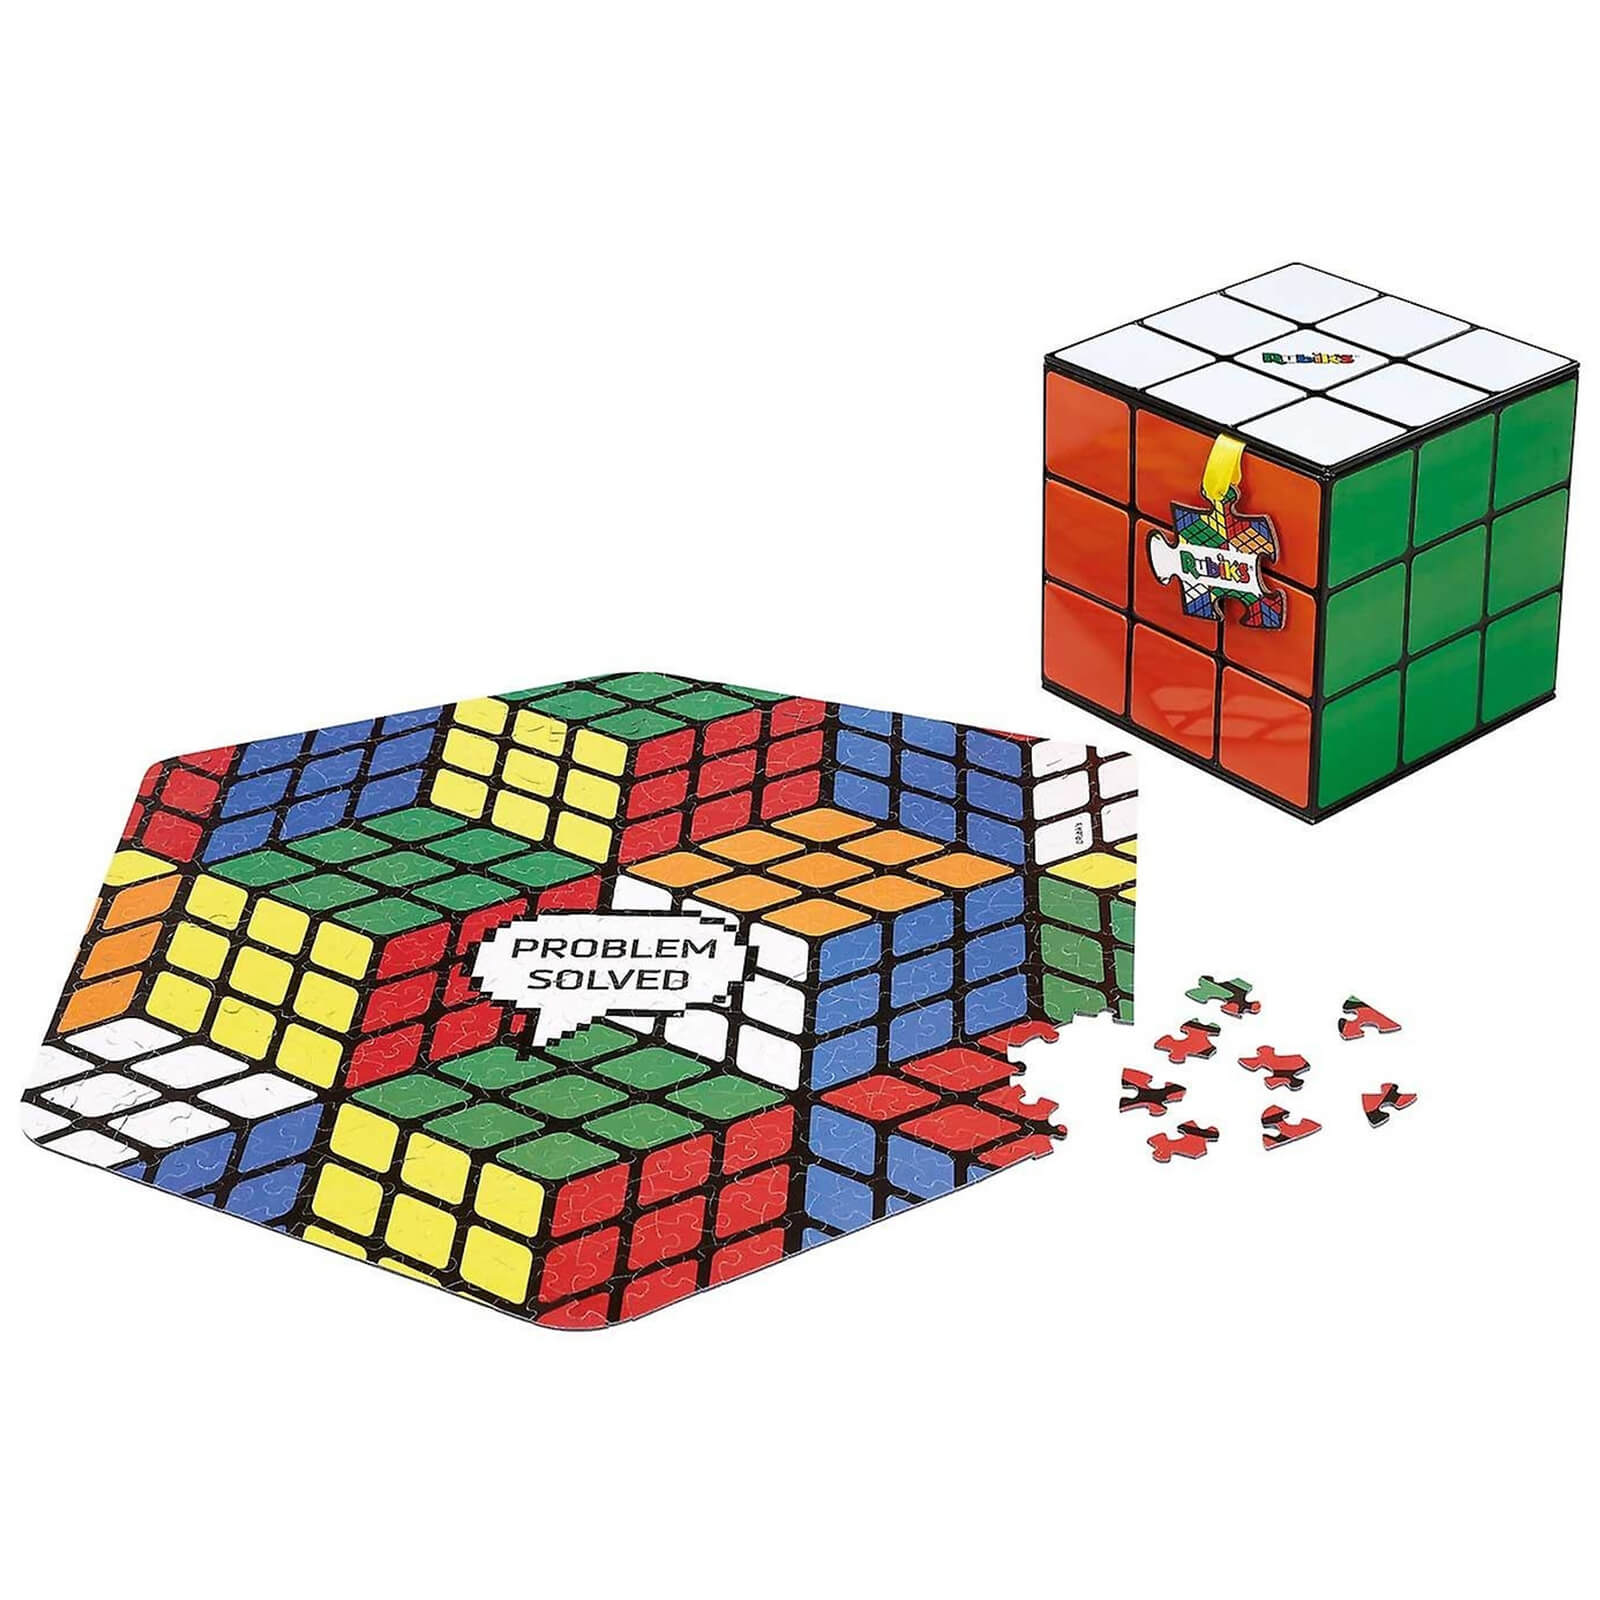 Image of Rubik's Cube Jigsaw Puzzle - 500 Pieces